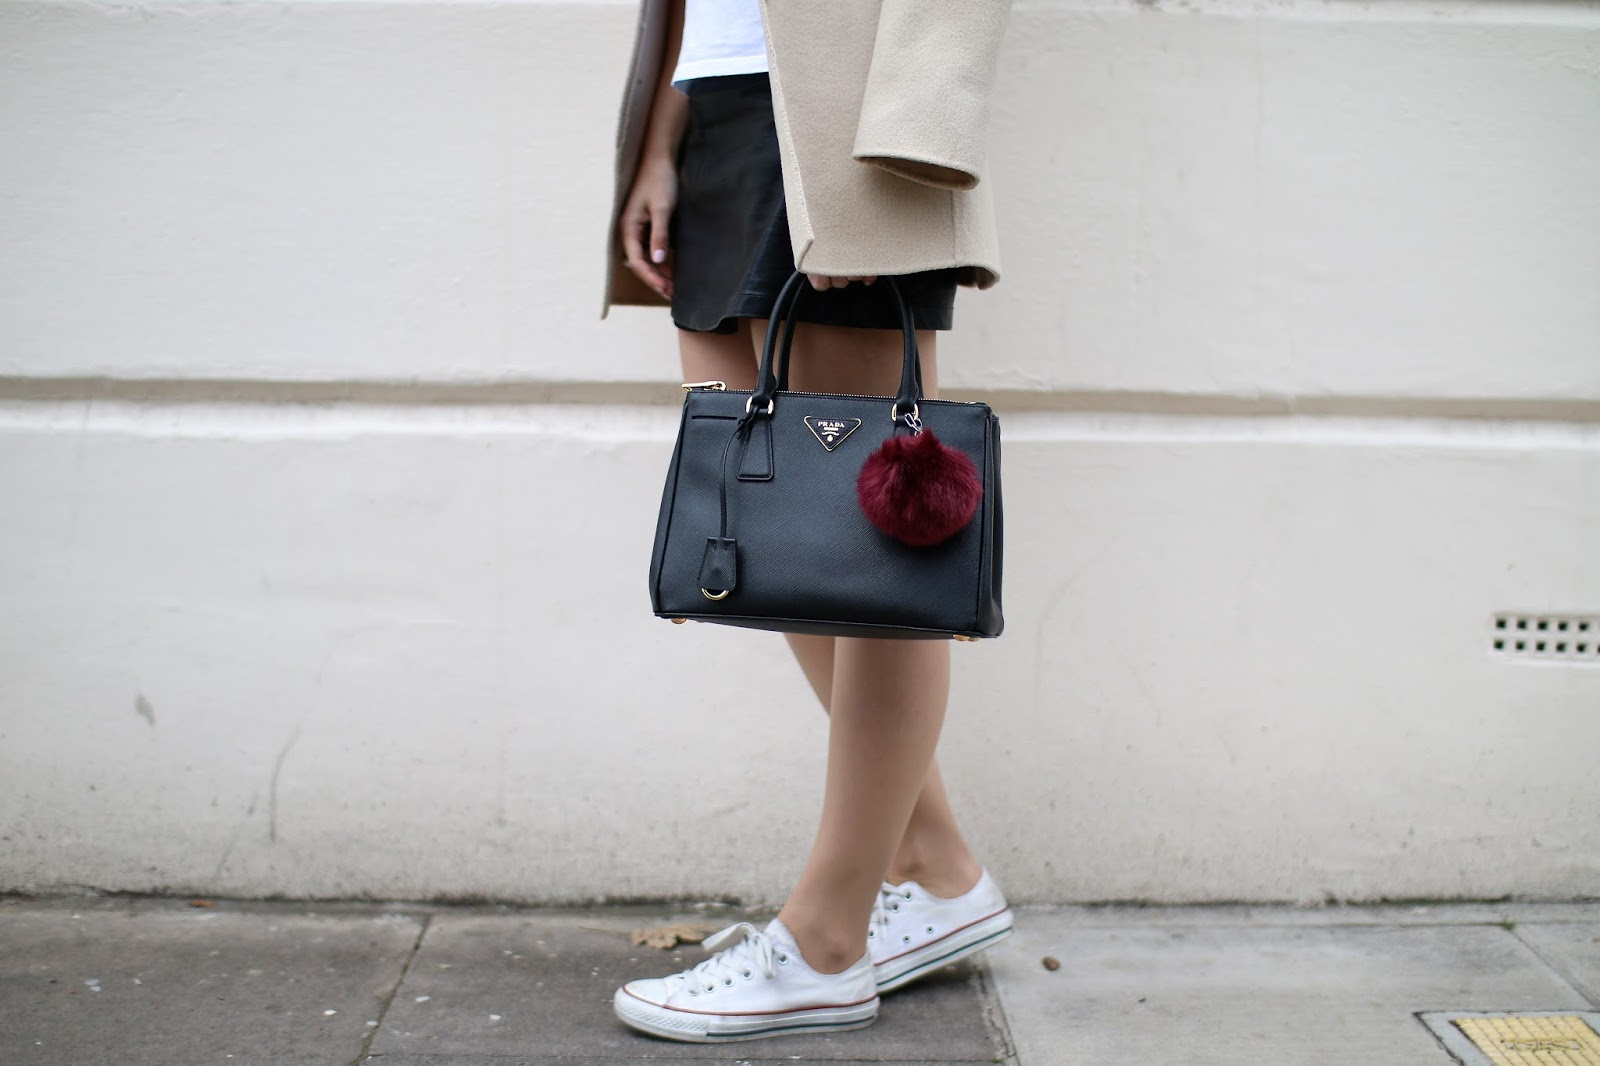 prada and converse in notting hill